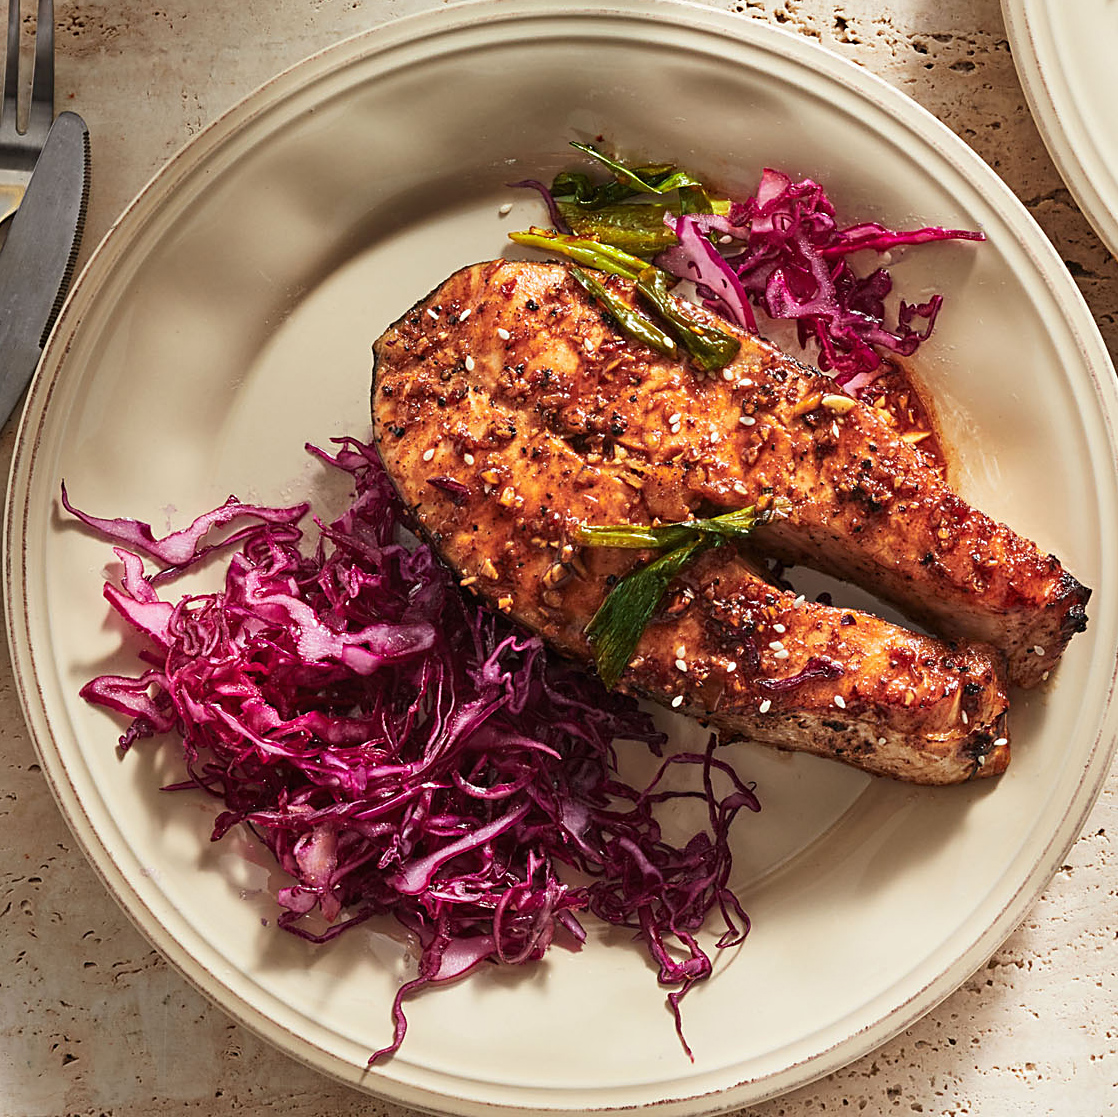 Ginger-Garlic Glazed Salmon Packet with Cabbage Slaw